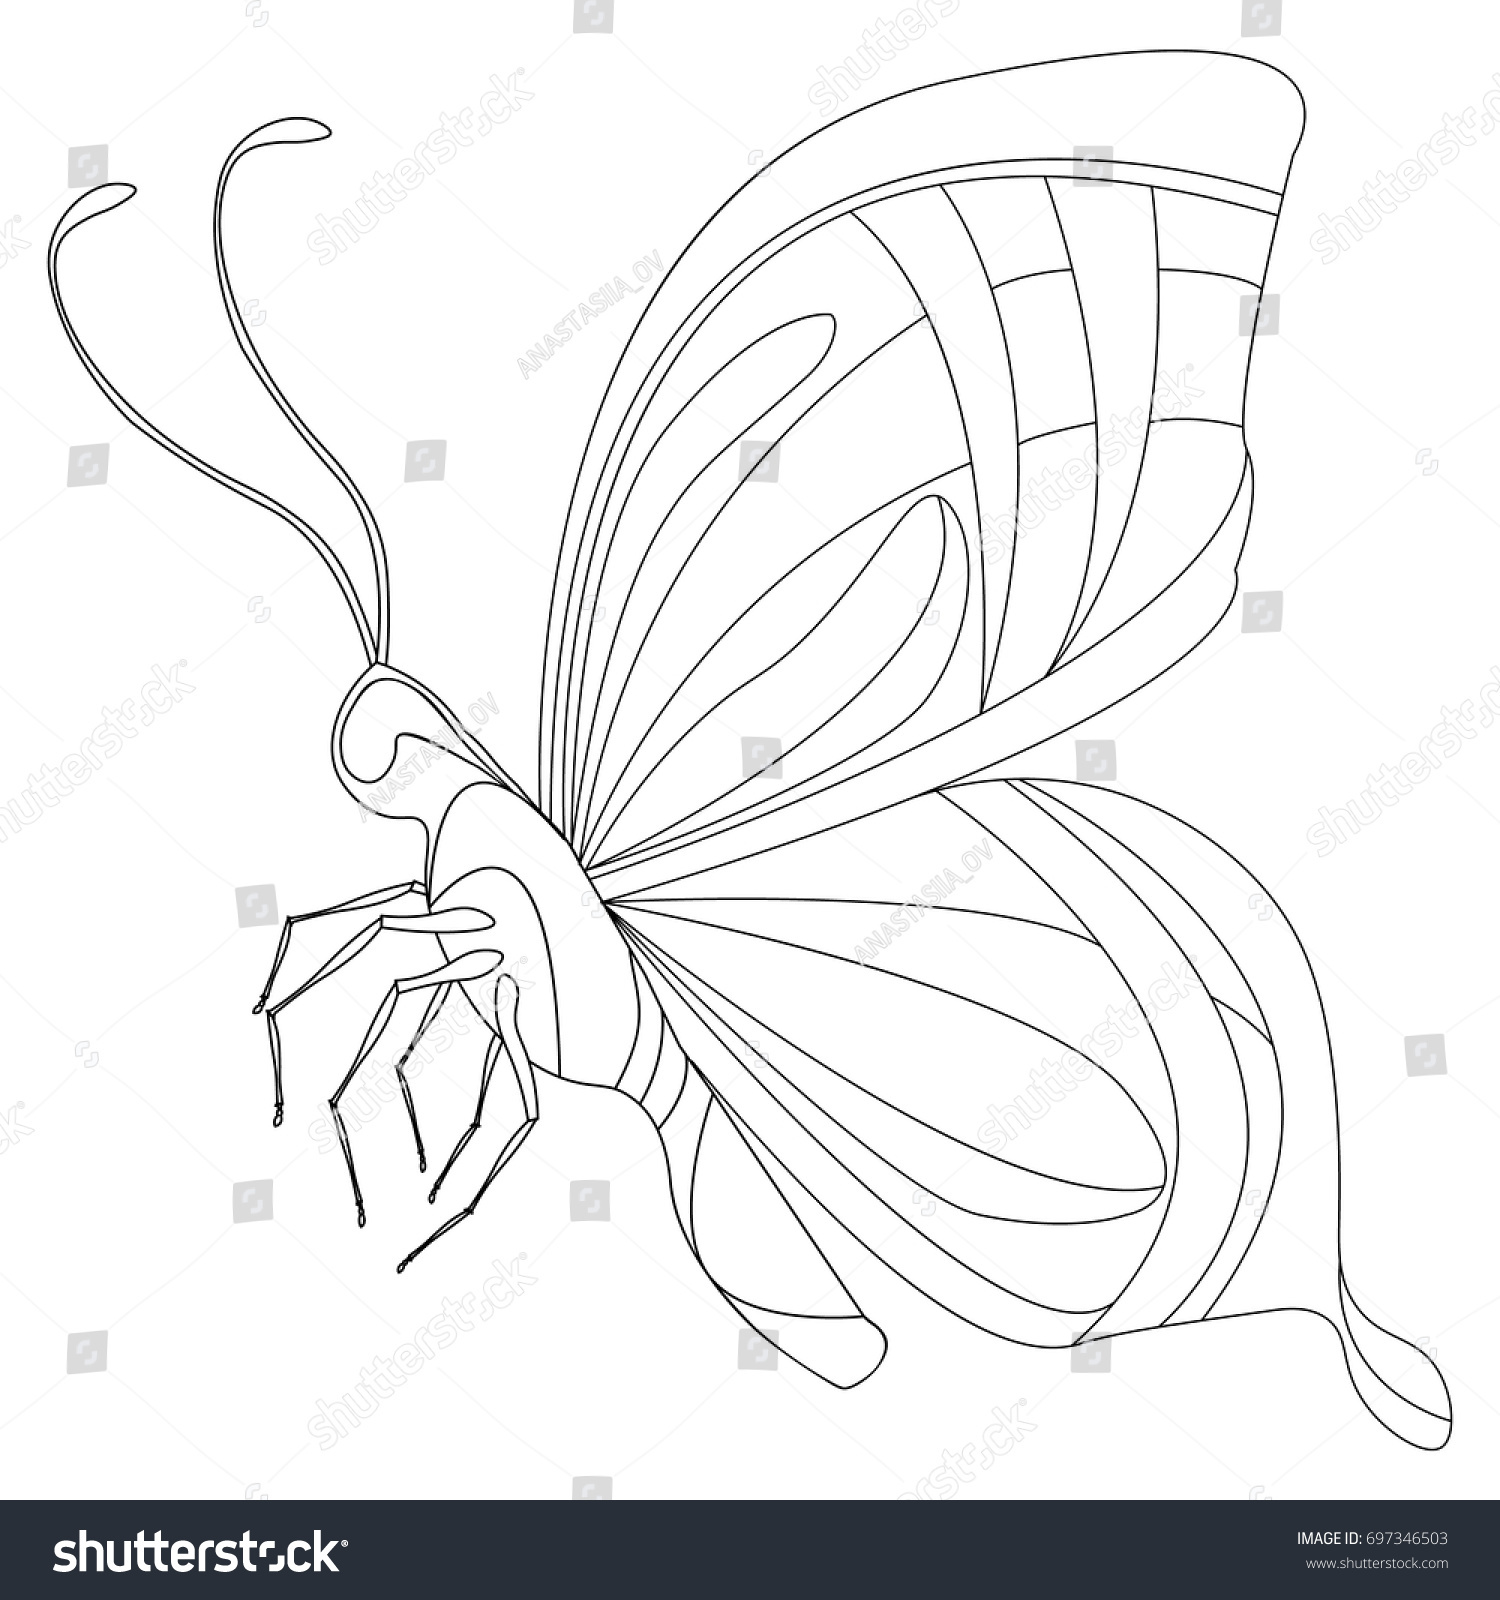 Coloring Page Butterfly Coloring Page Decorative Stock Vector ...